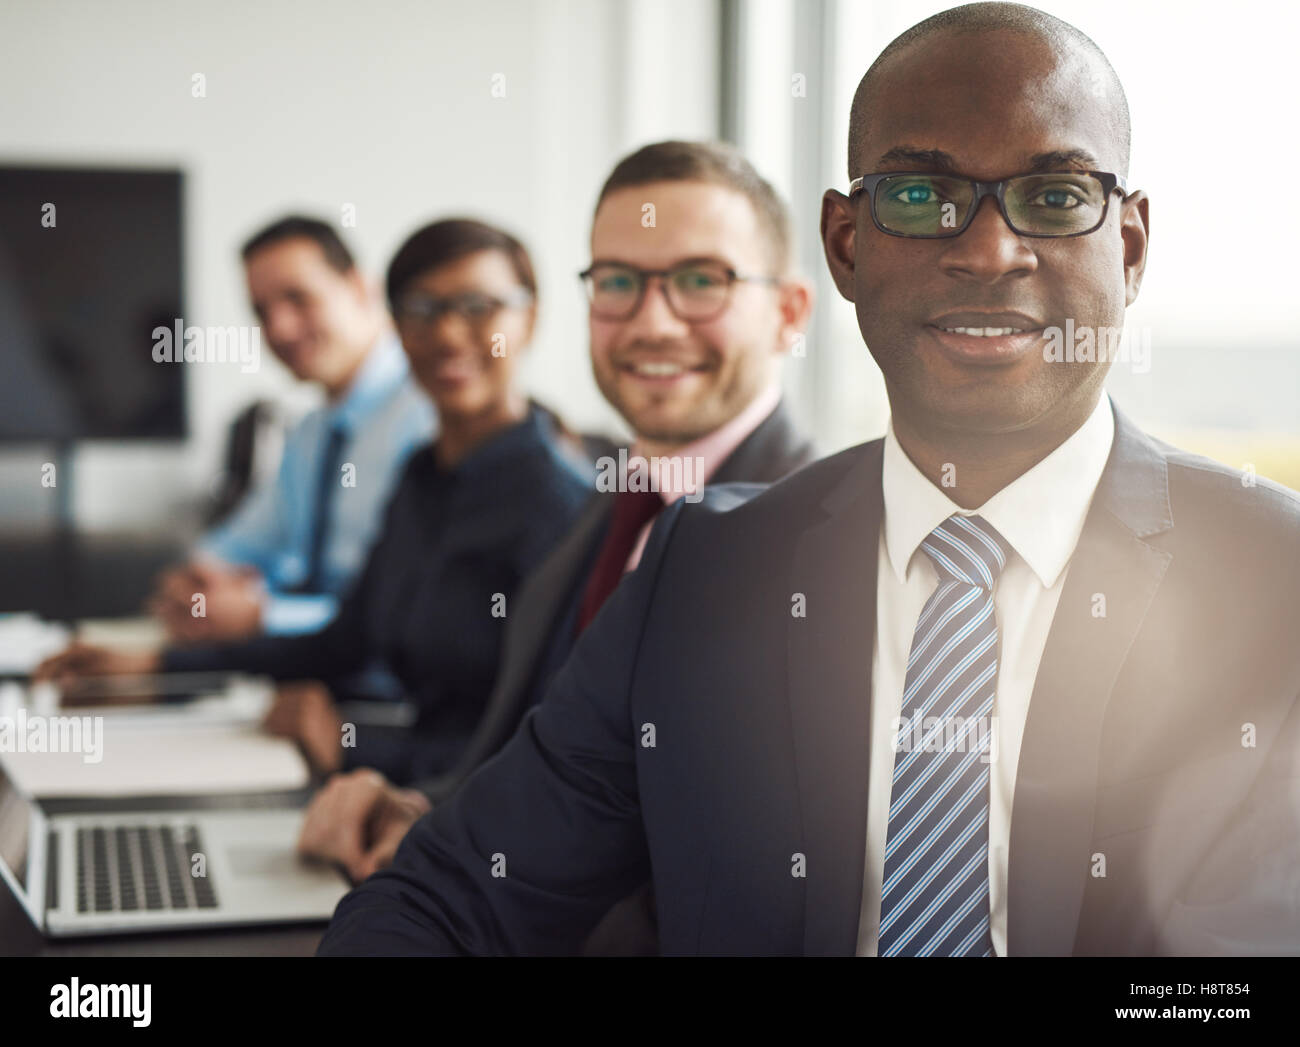 Friendly confident African businessman in a management meeting with a group of multiracial colleagues smiling at - Stock Image